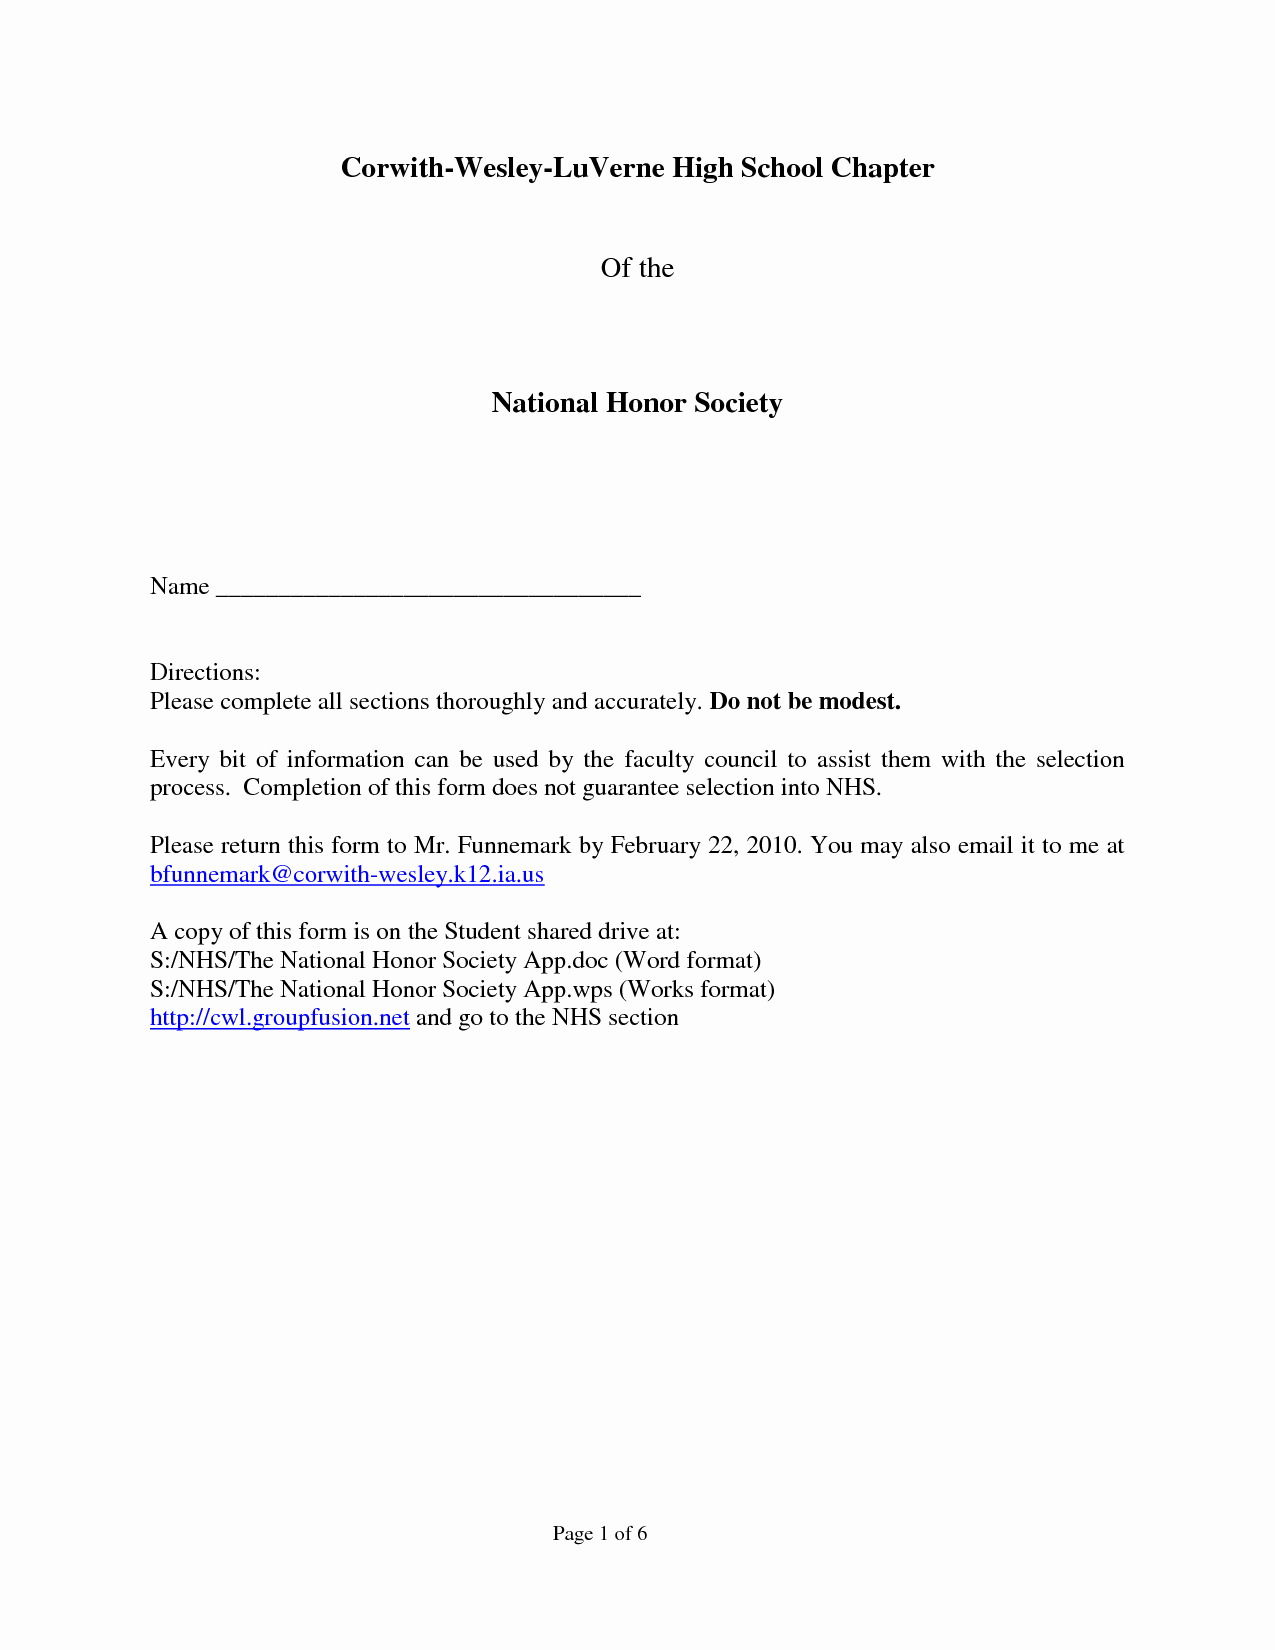 Nhs Letter Of Recommendation New Sample Re Mendation Letter for National Honor society